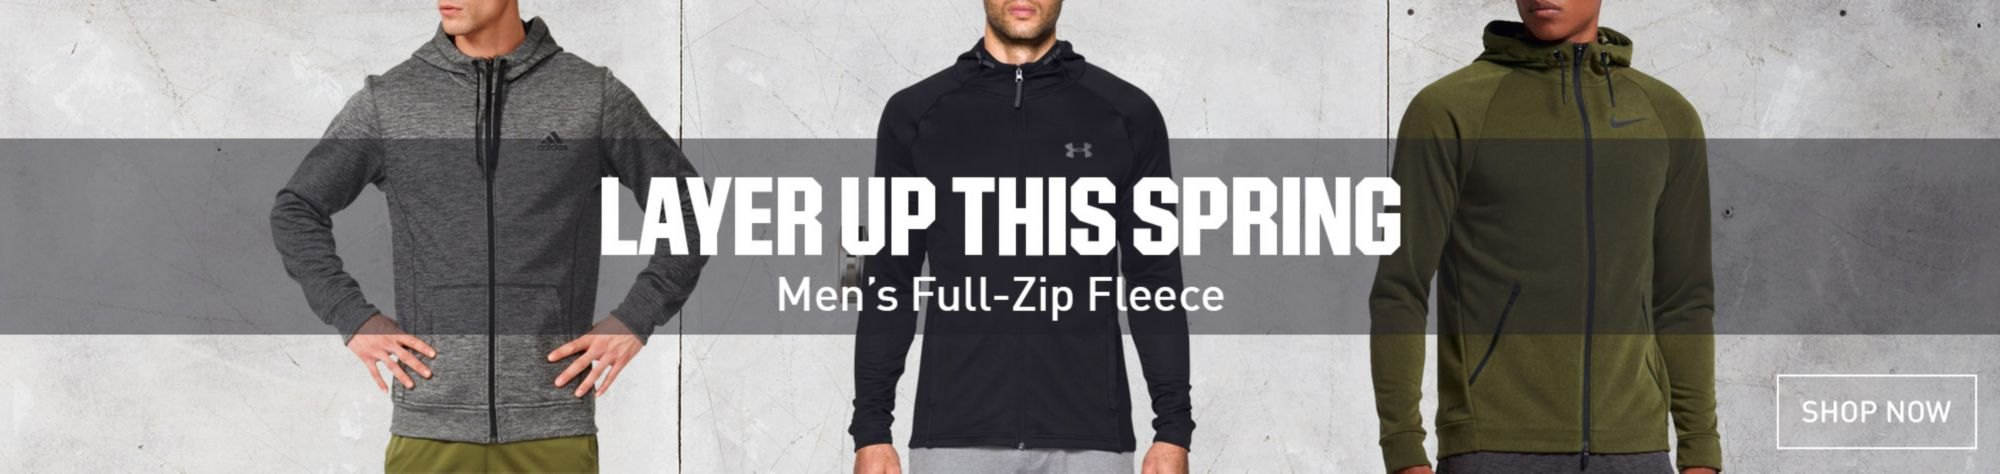 Men's Lightweight Fleece